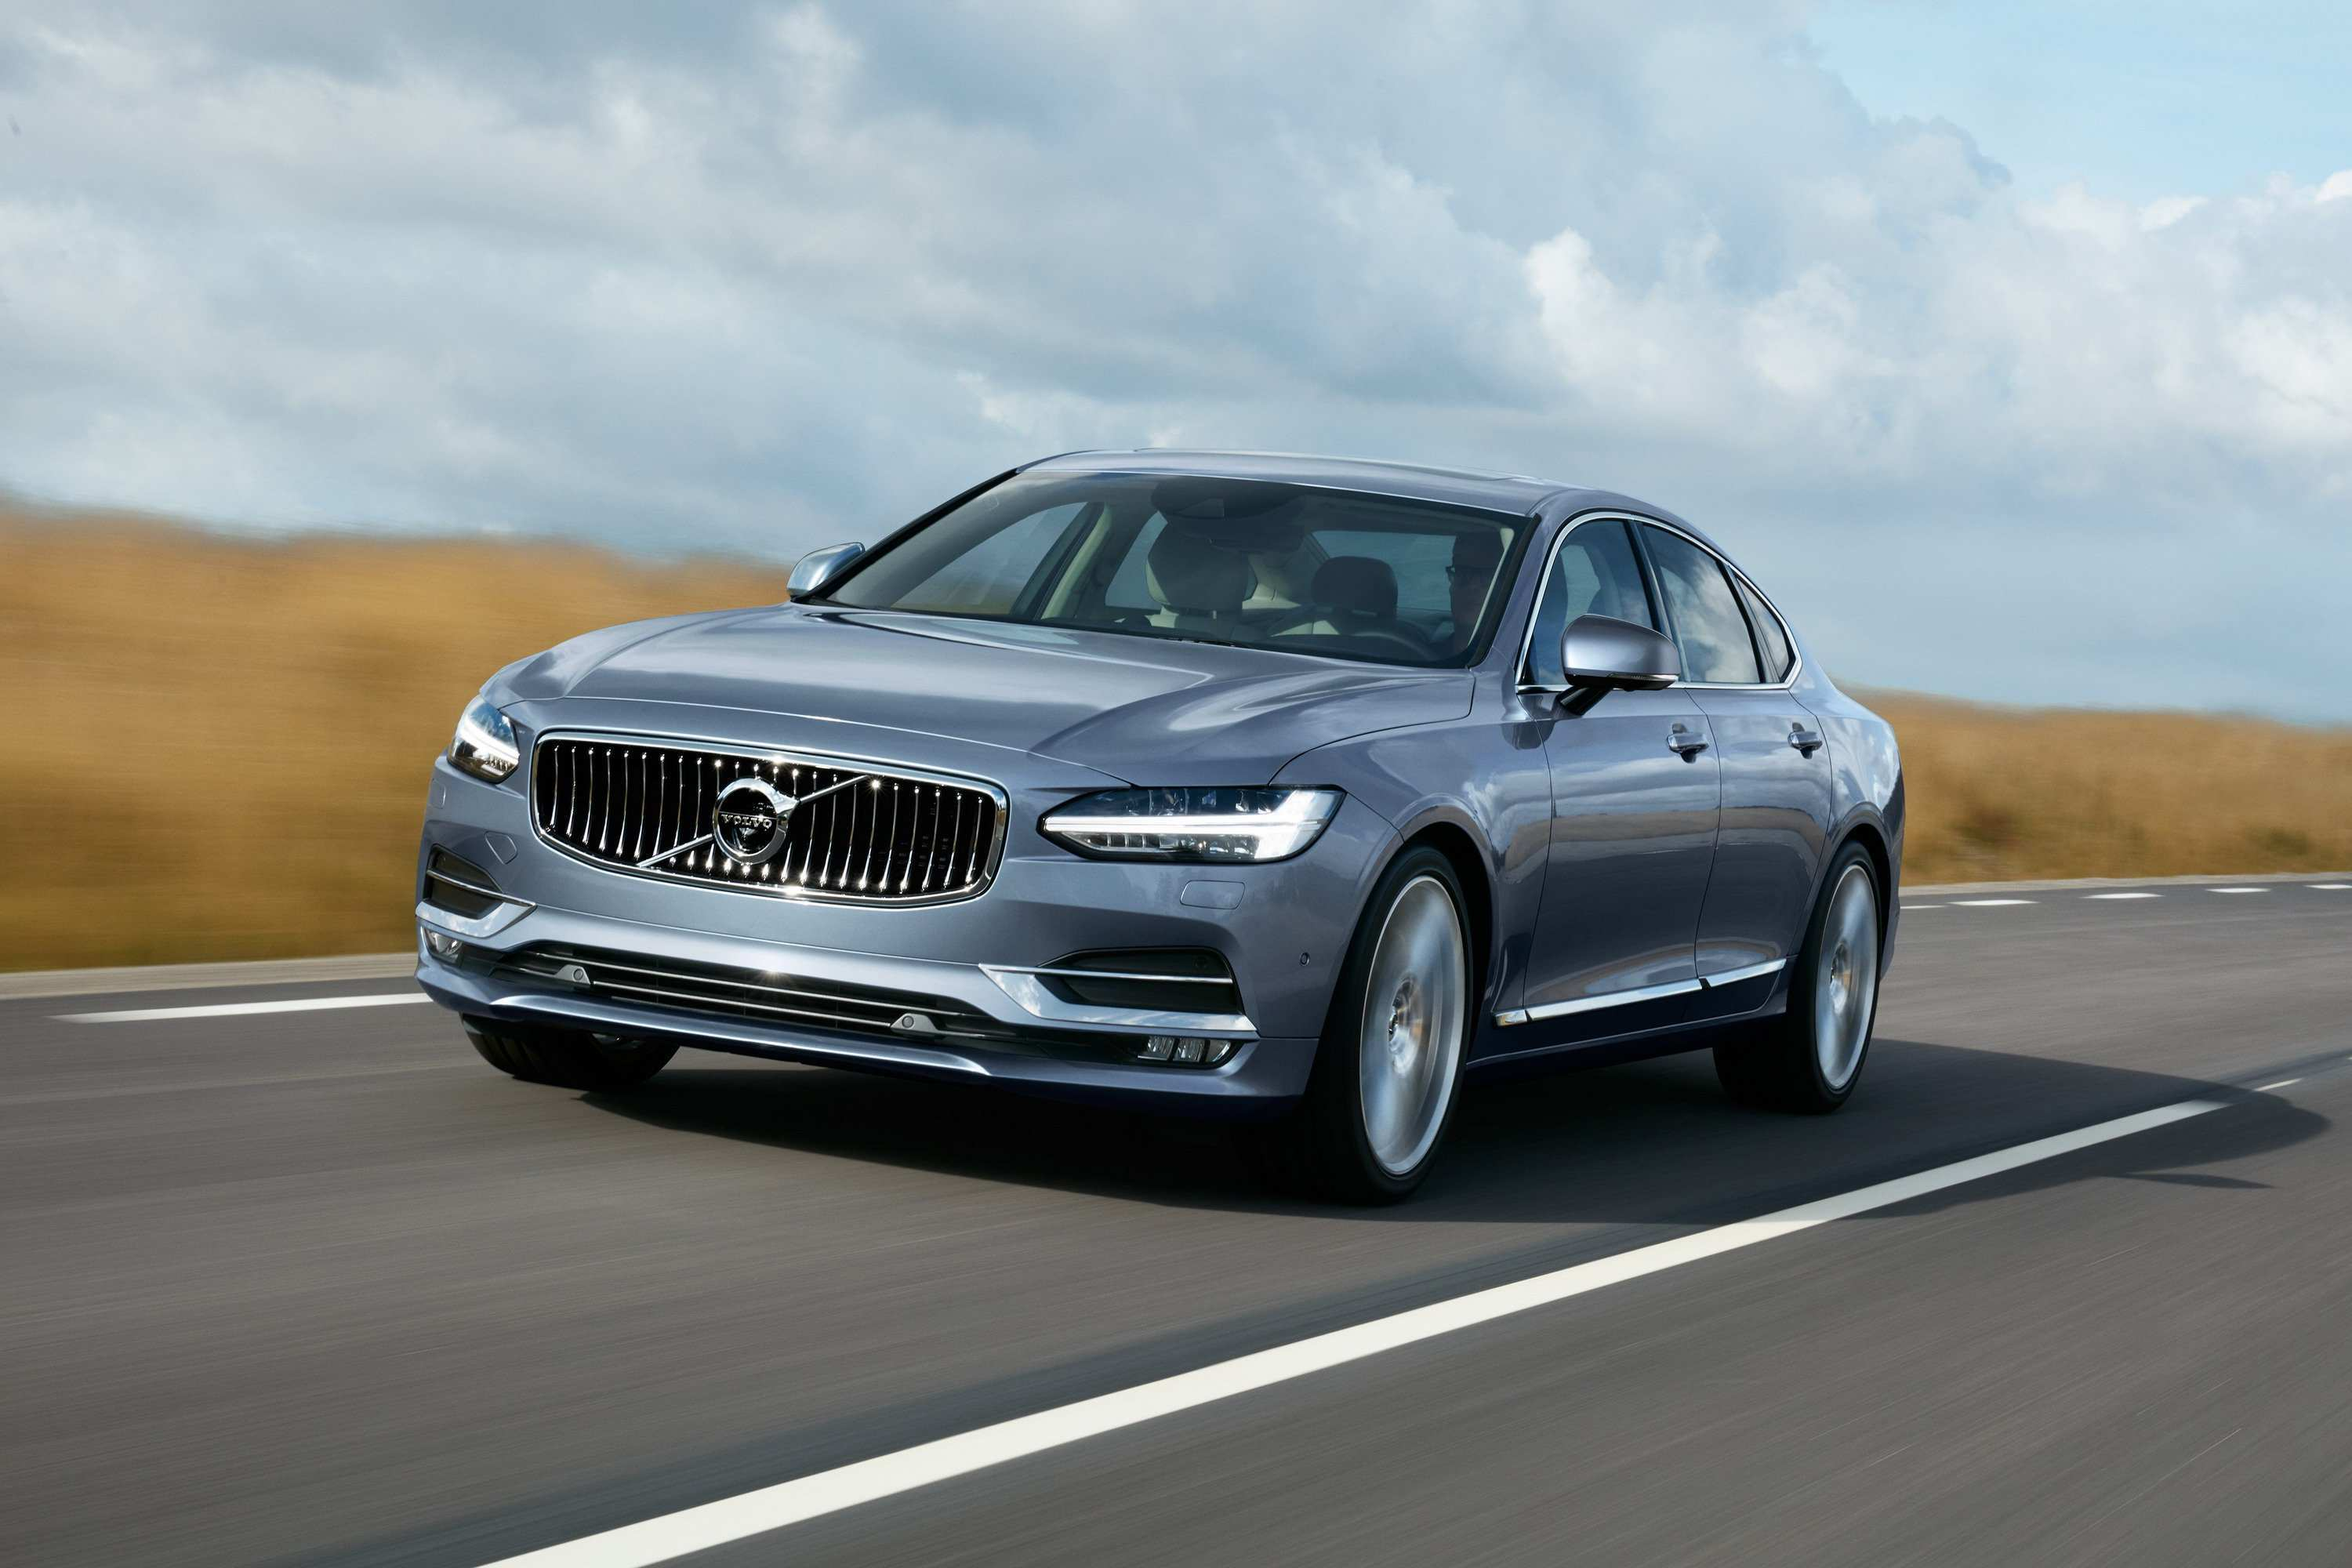 52 All New 2020 Volvo S90 Exterior and Interior for 2020 Volvo S90